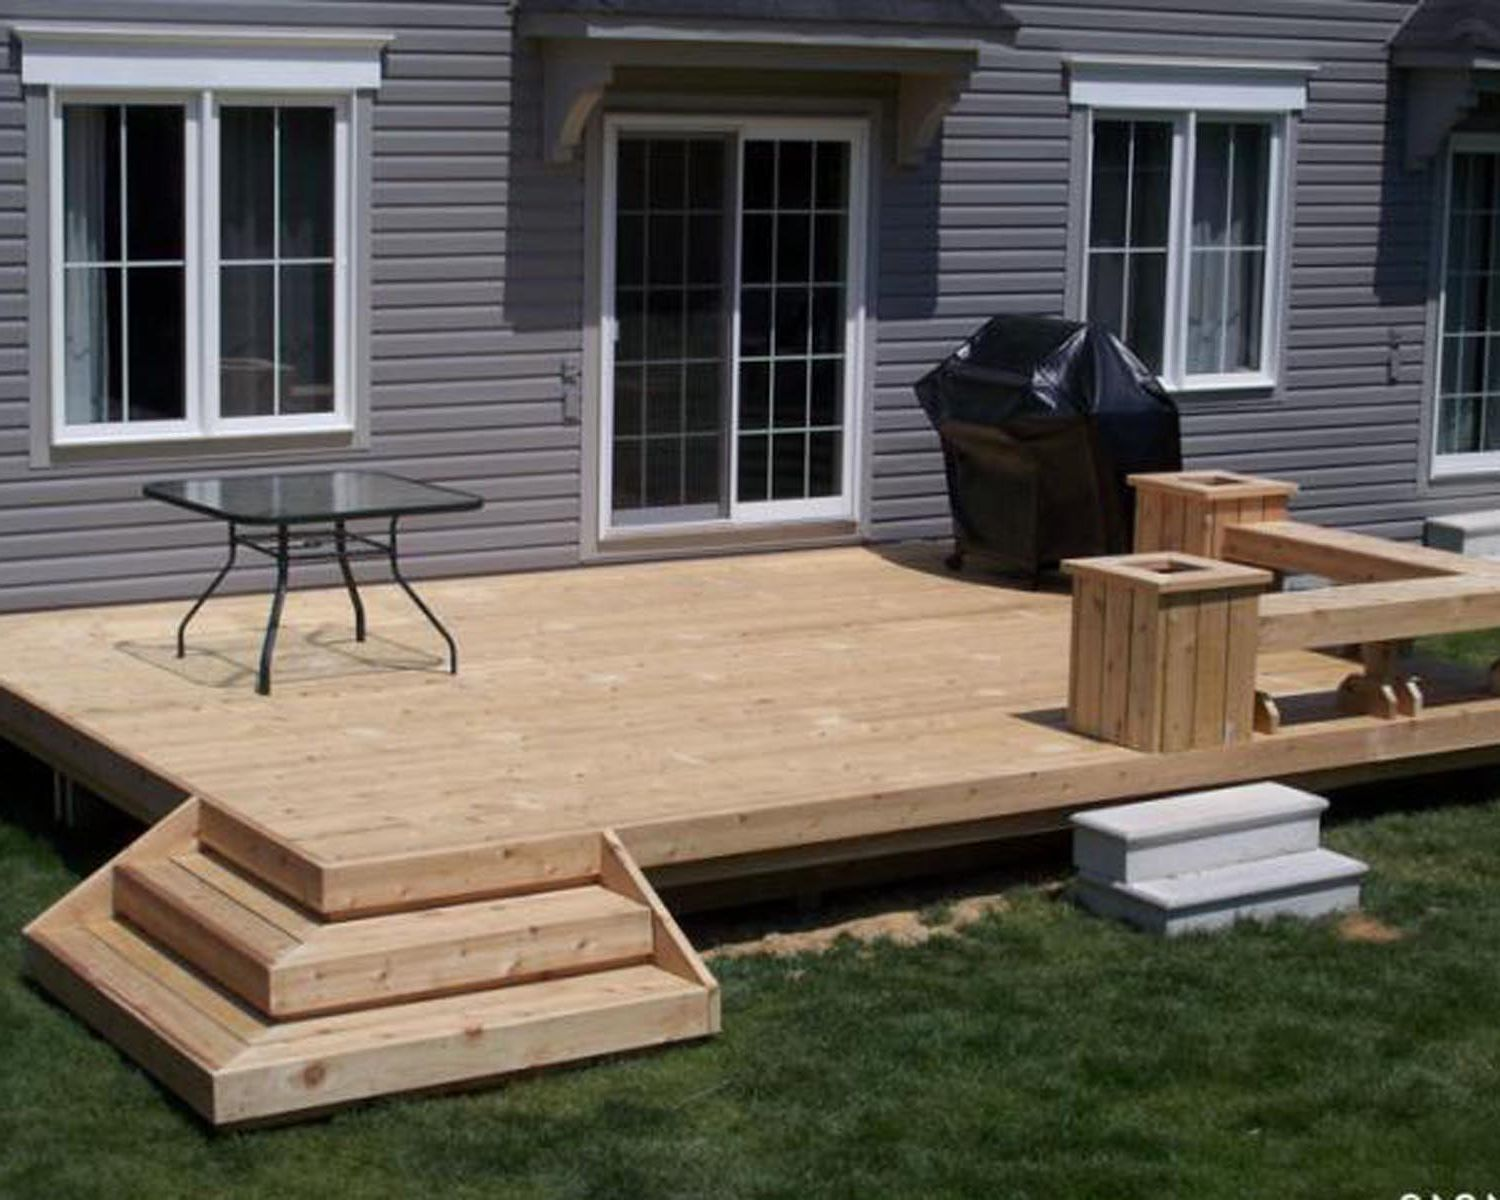 Ideas For Deck Designs cool outdoor deck design 25 Best Ideas About Backyard Deck Designs On Pinterest Deck